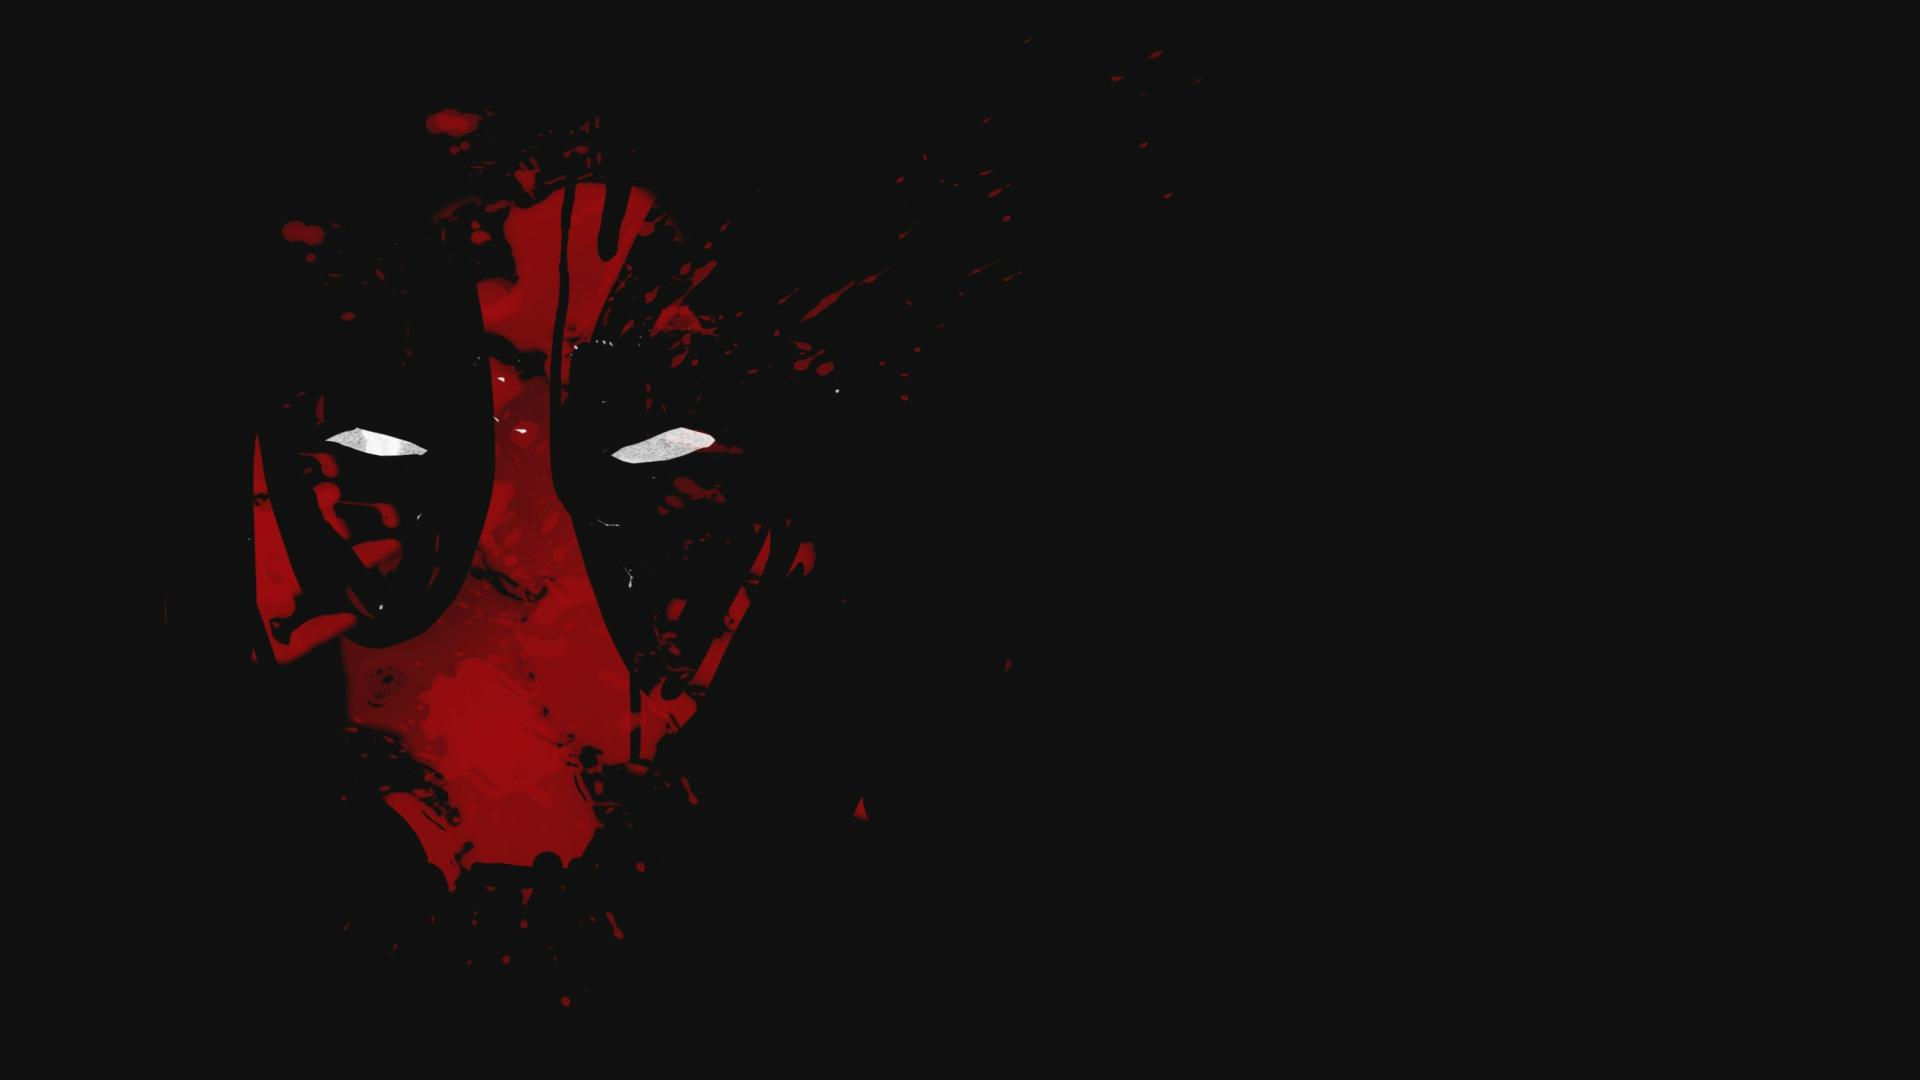 Cool deadpool wallpaper with red abstract mask with white - Dark background wallpaper hd ...